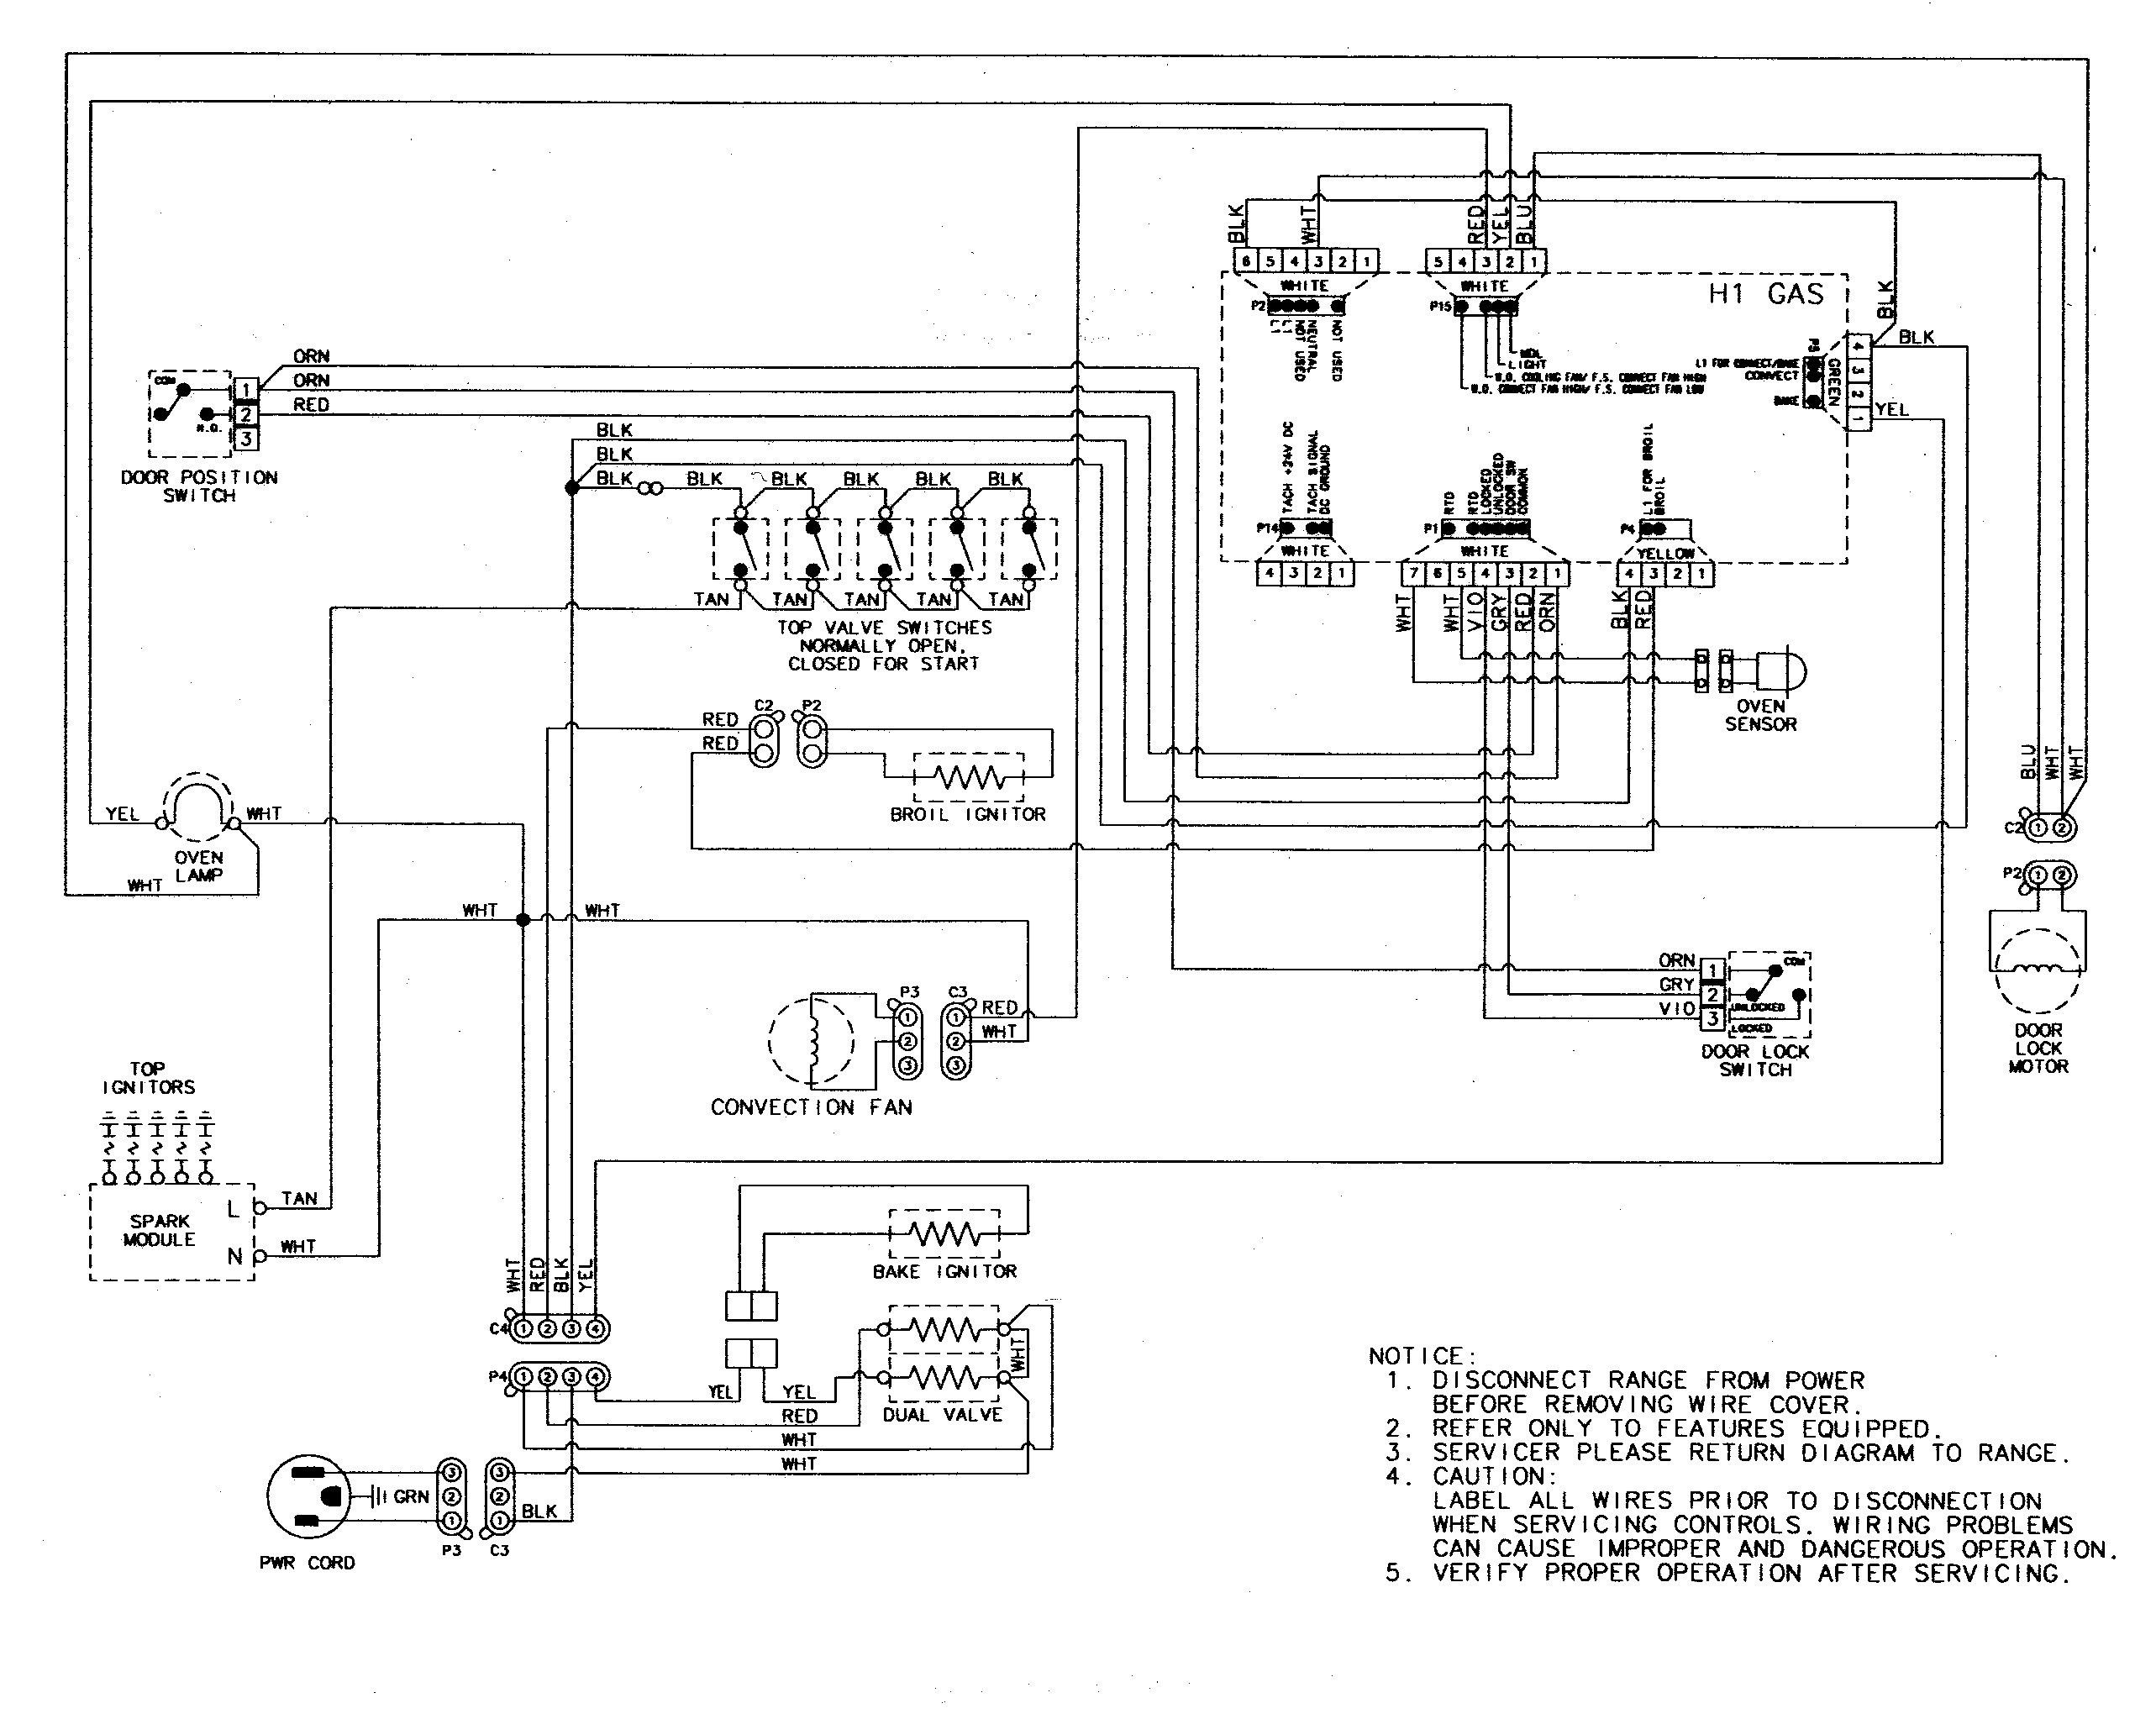 Unique Hotpoint Dryer Wiring Diagram In 2020 Whirlpool Dryer Diagram Powder Coating Oven